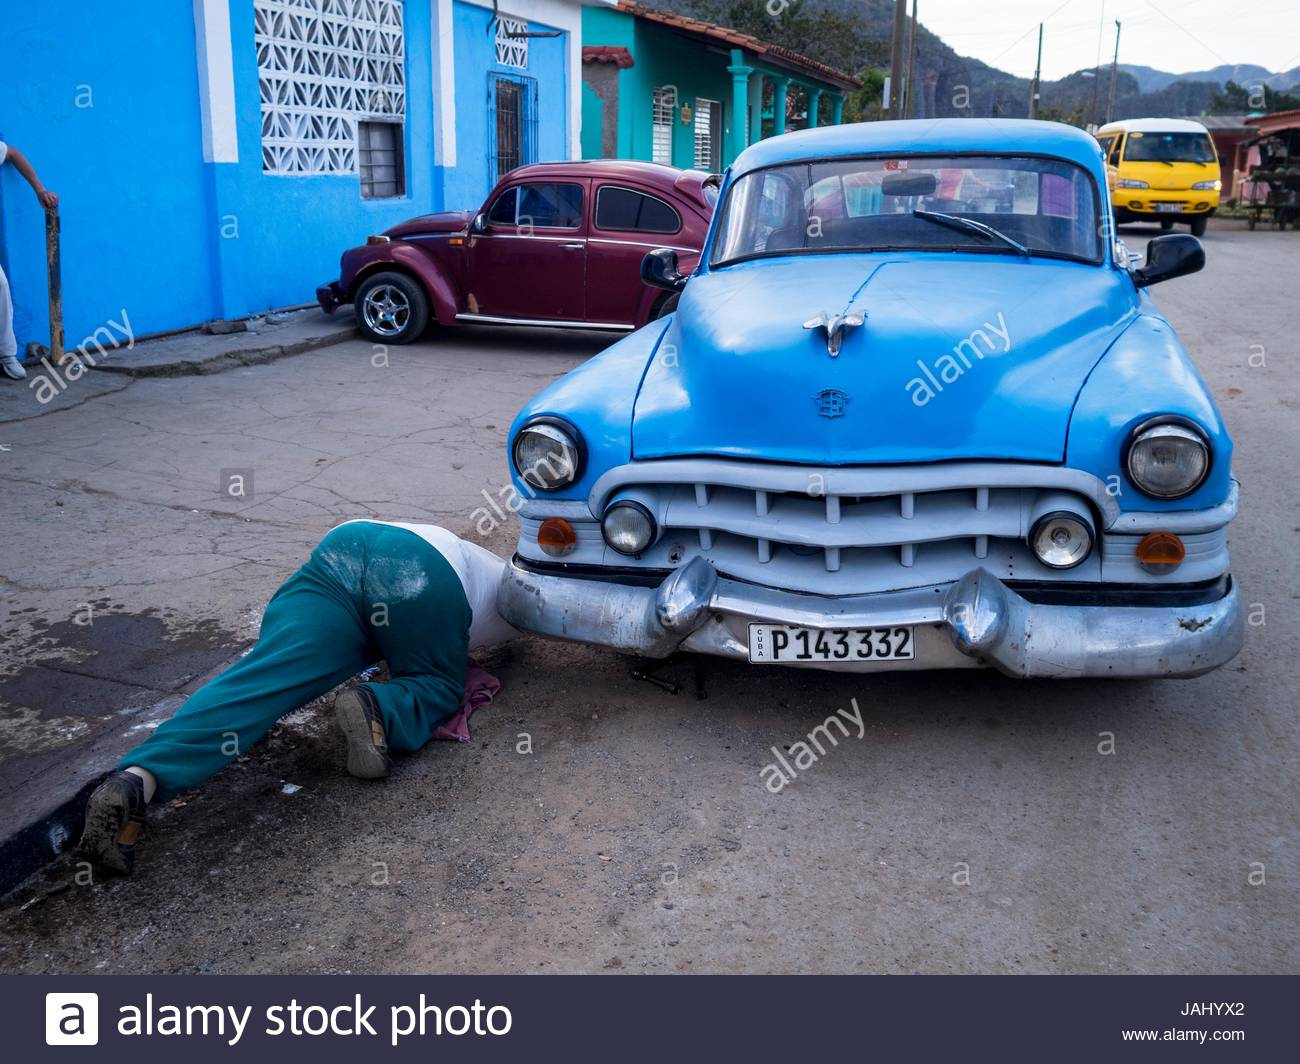 A vintage American car being repaired in Viales. - Stock Image